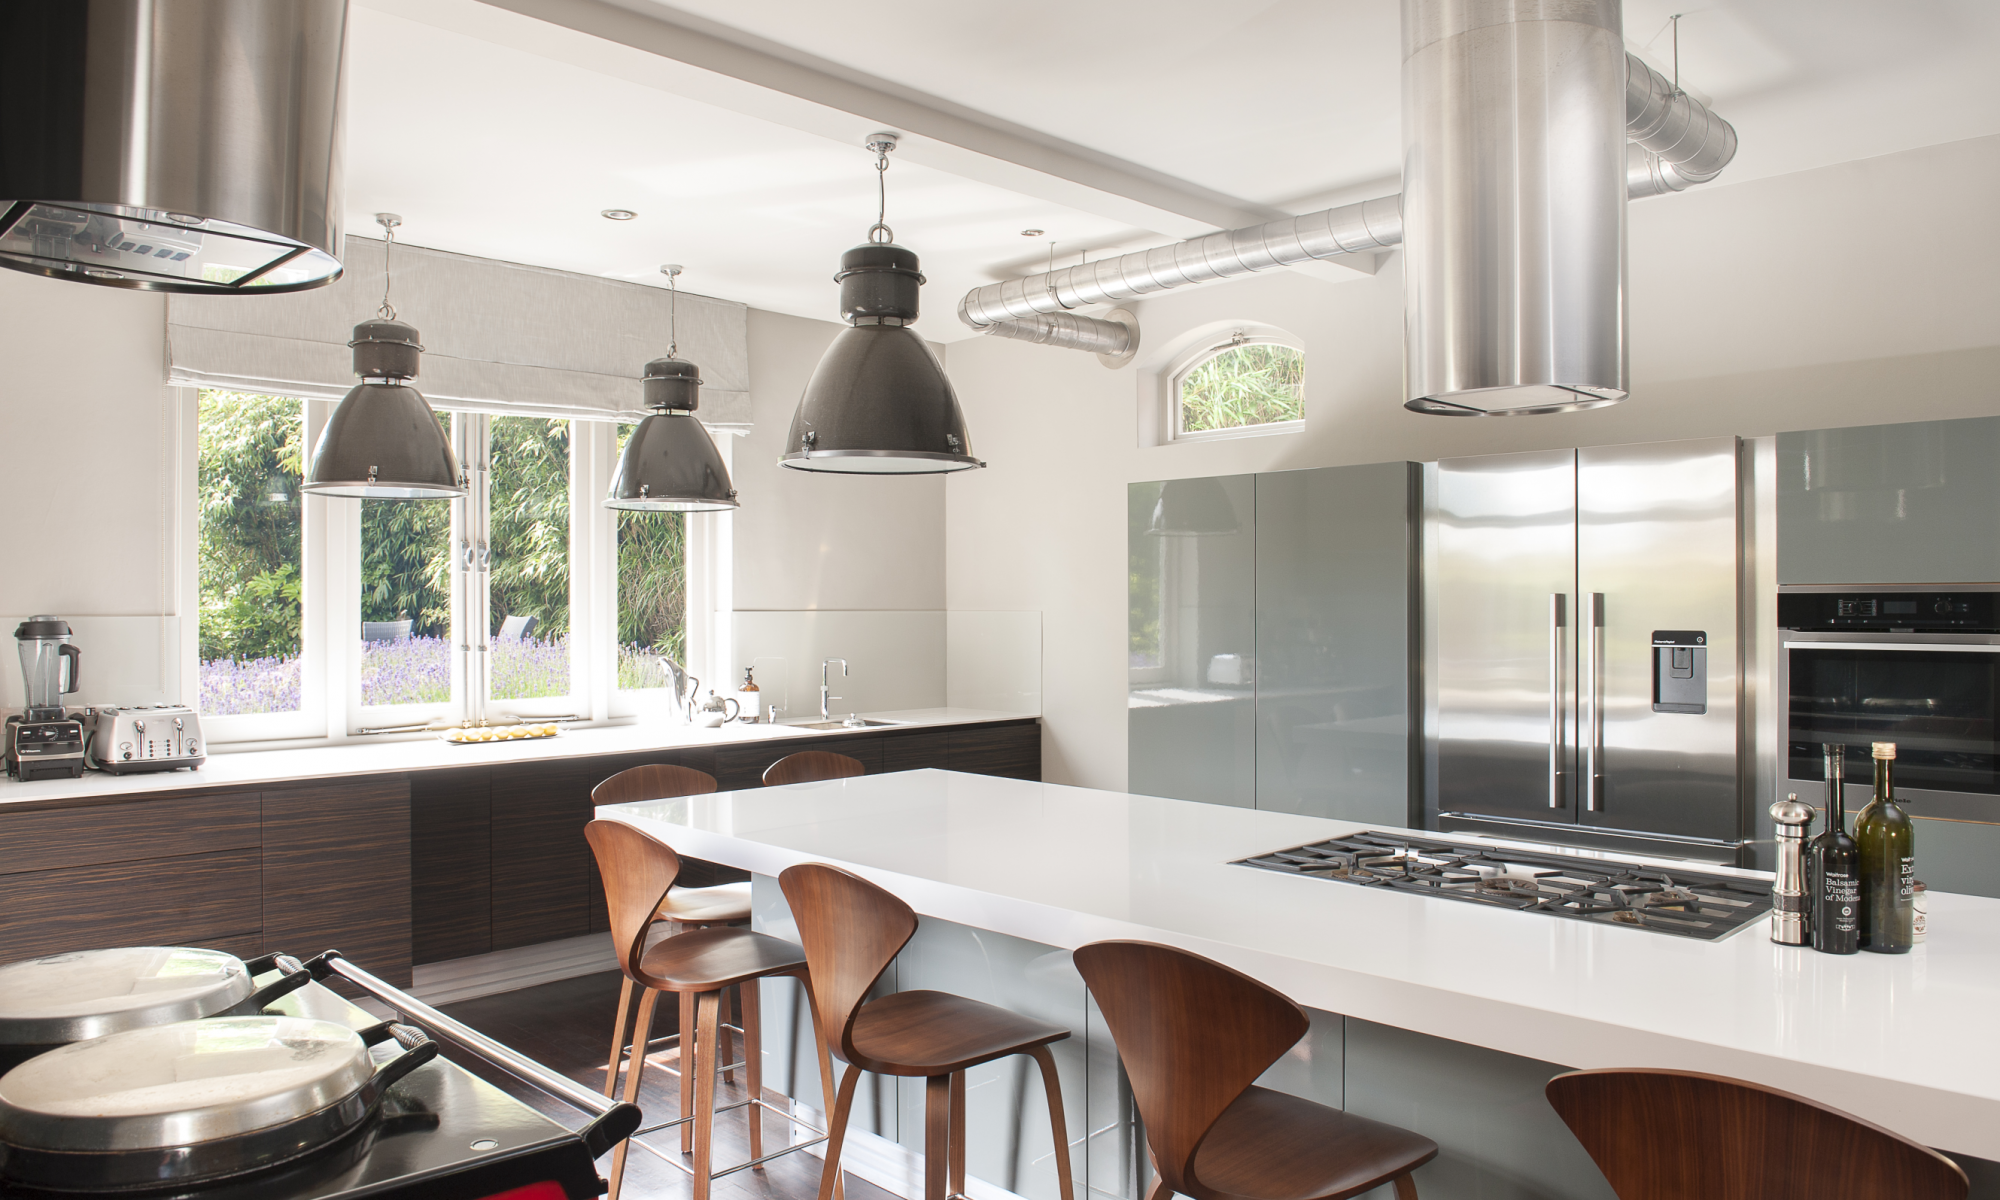 Mix together an interior decorator and a bespoke kitchen designer and you have the perfect recipe for creating a 21st century home from a Victorian coach house...